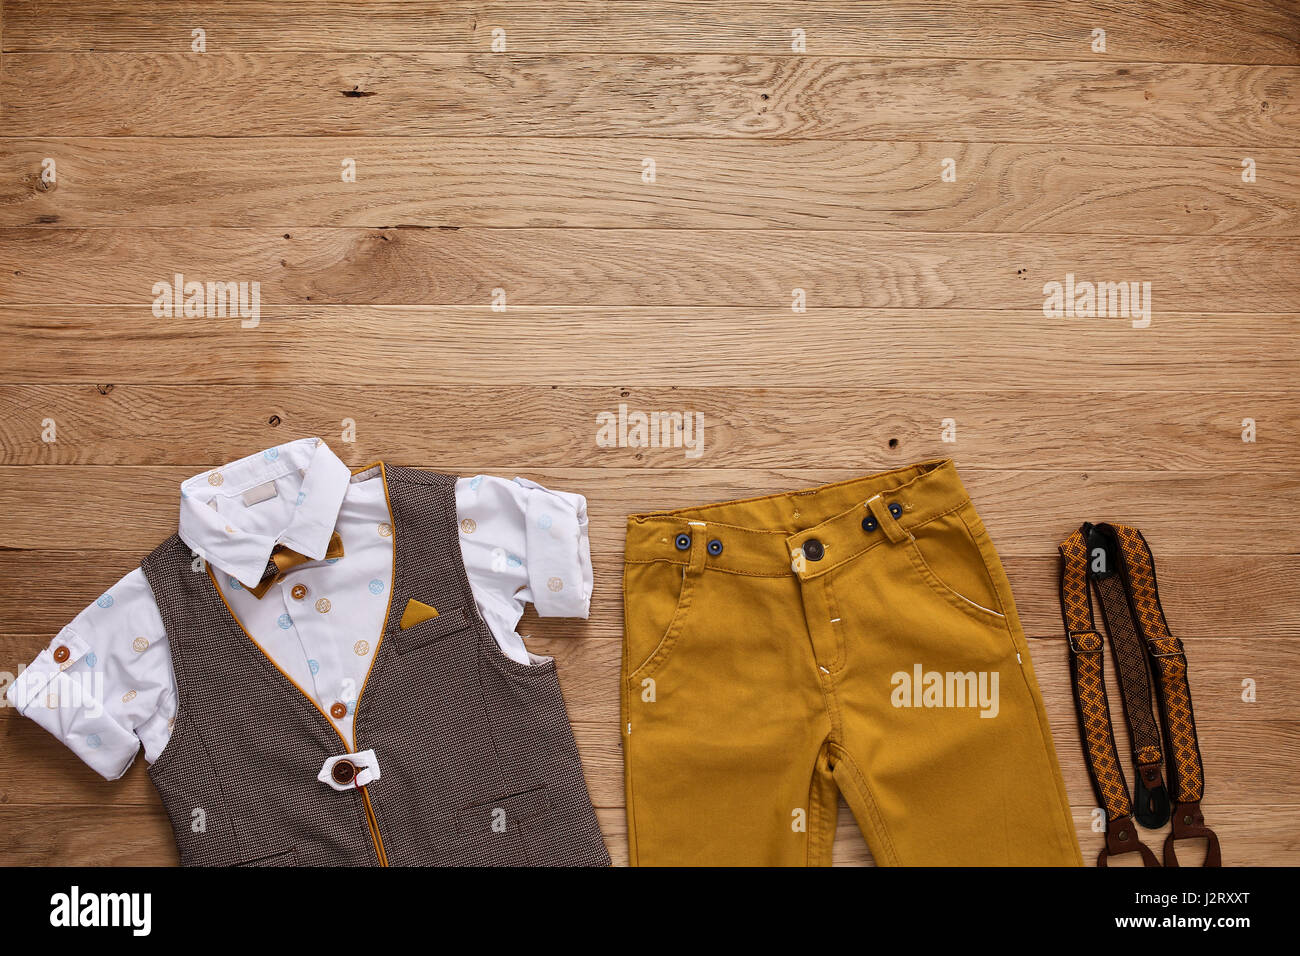 b3342f5a280e8 Top view photo of the boy's clothes with accessories on the wooden  background. White shirt with print, brown vest, bowtie, brown pants and  suspenders.